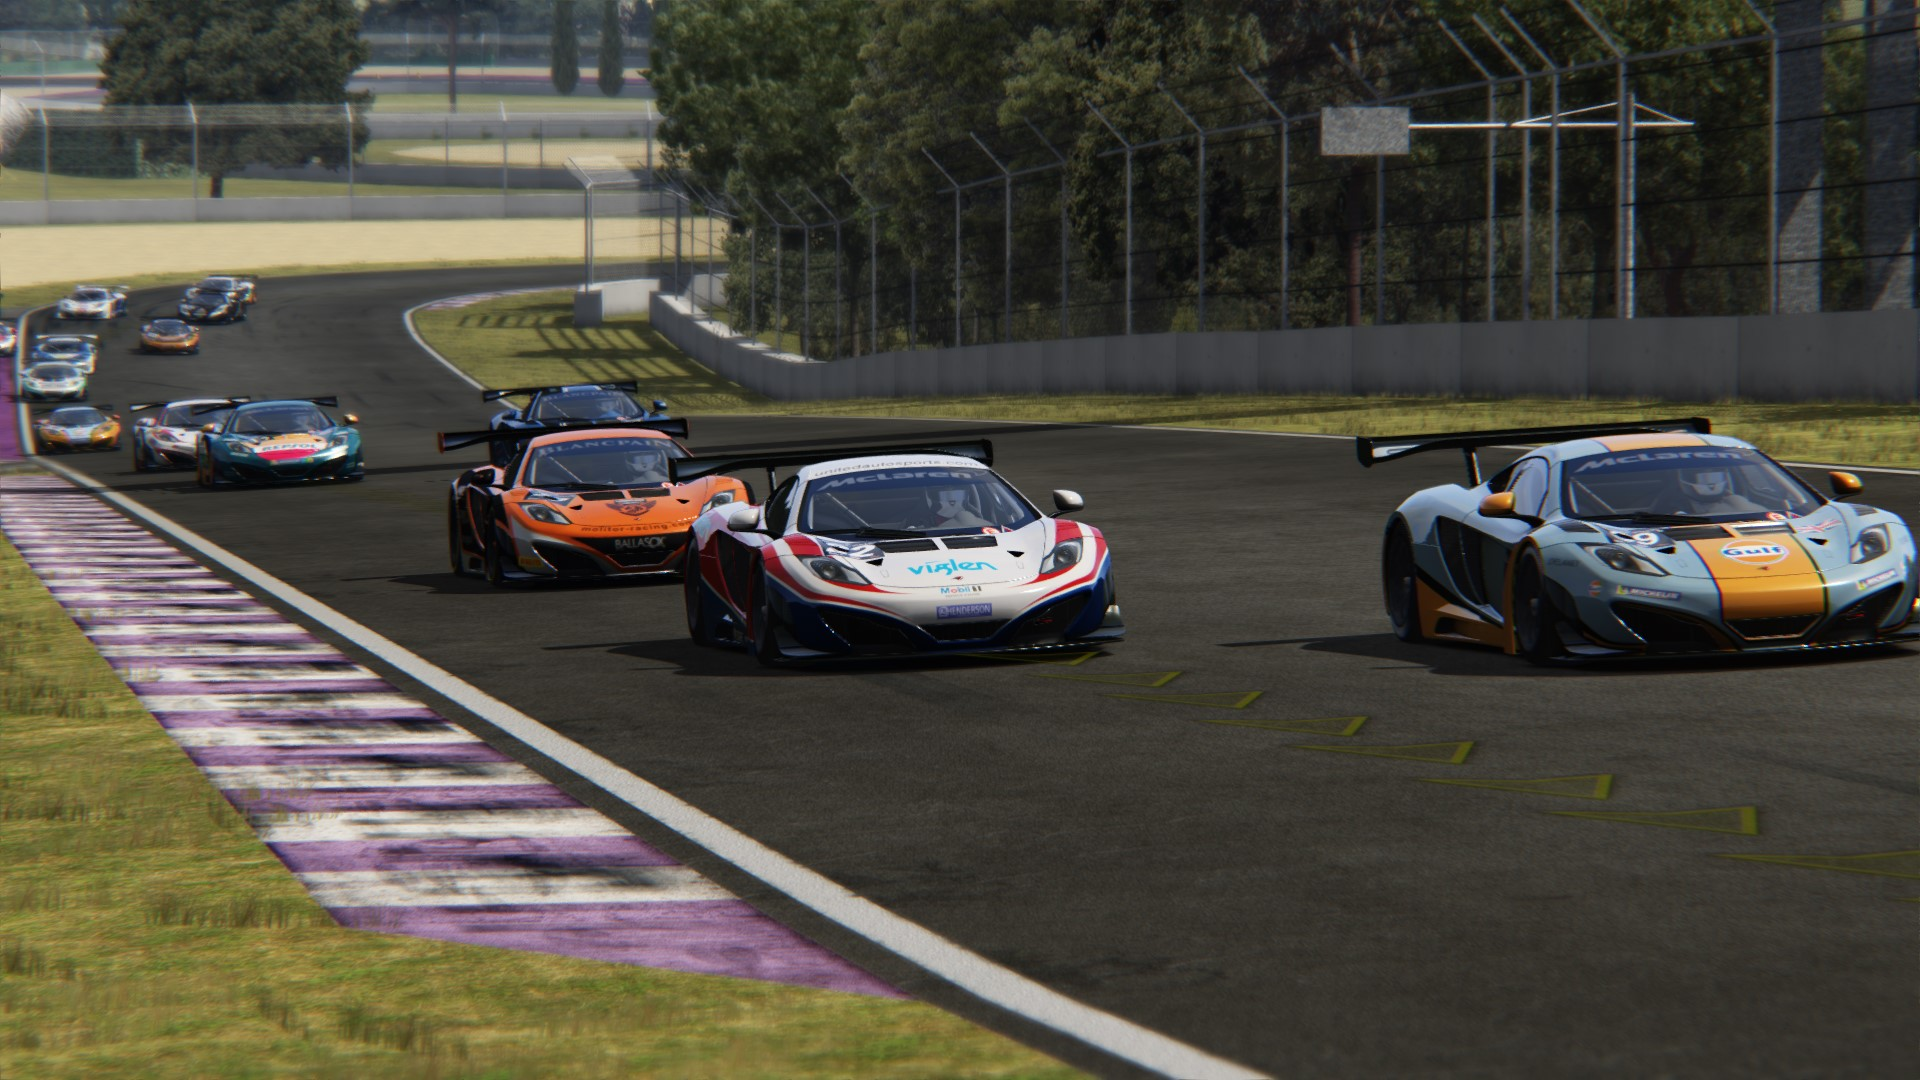 Screenshot_mclaren_mp412c_gt3_toscana_22-5-117-15-27-2.jpg